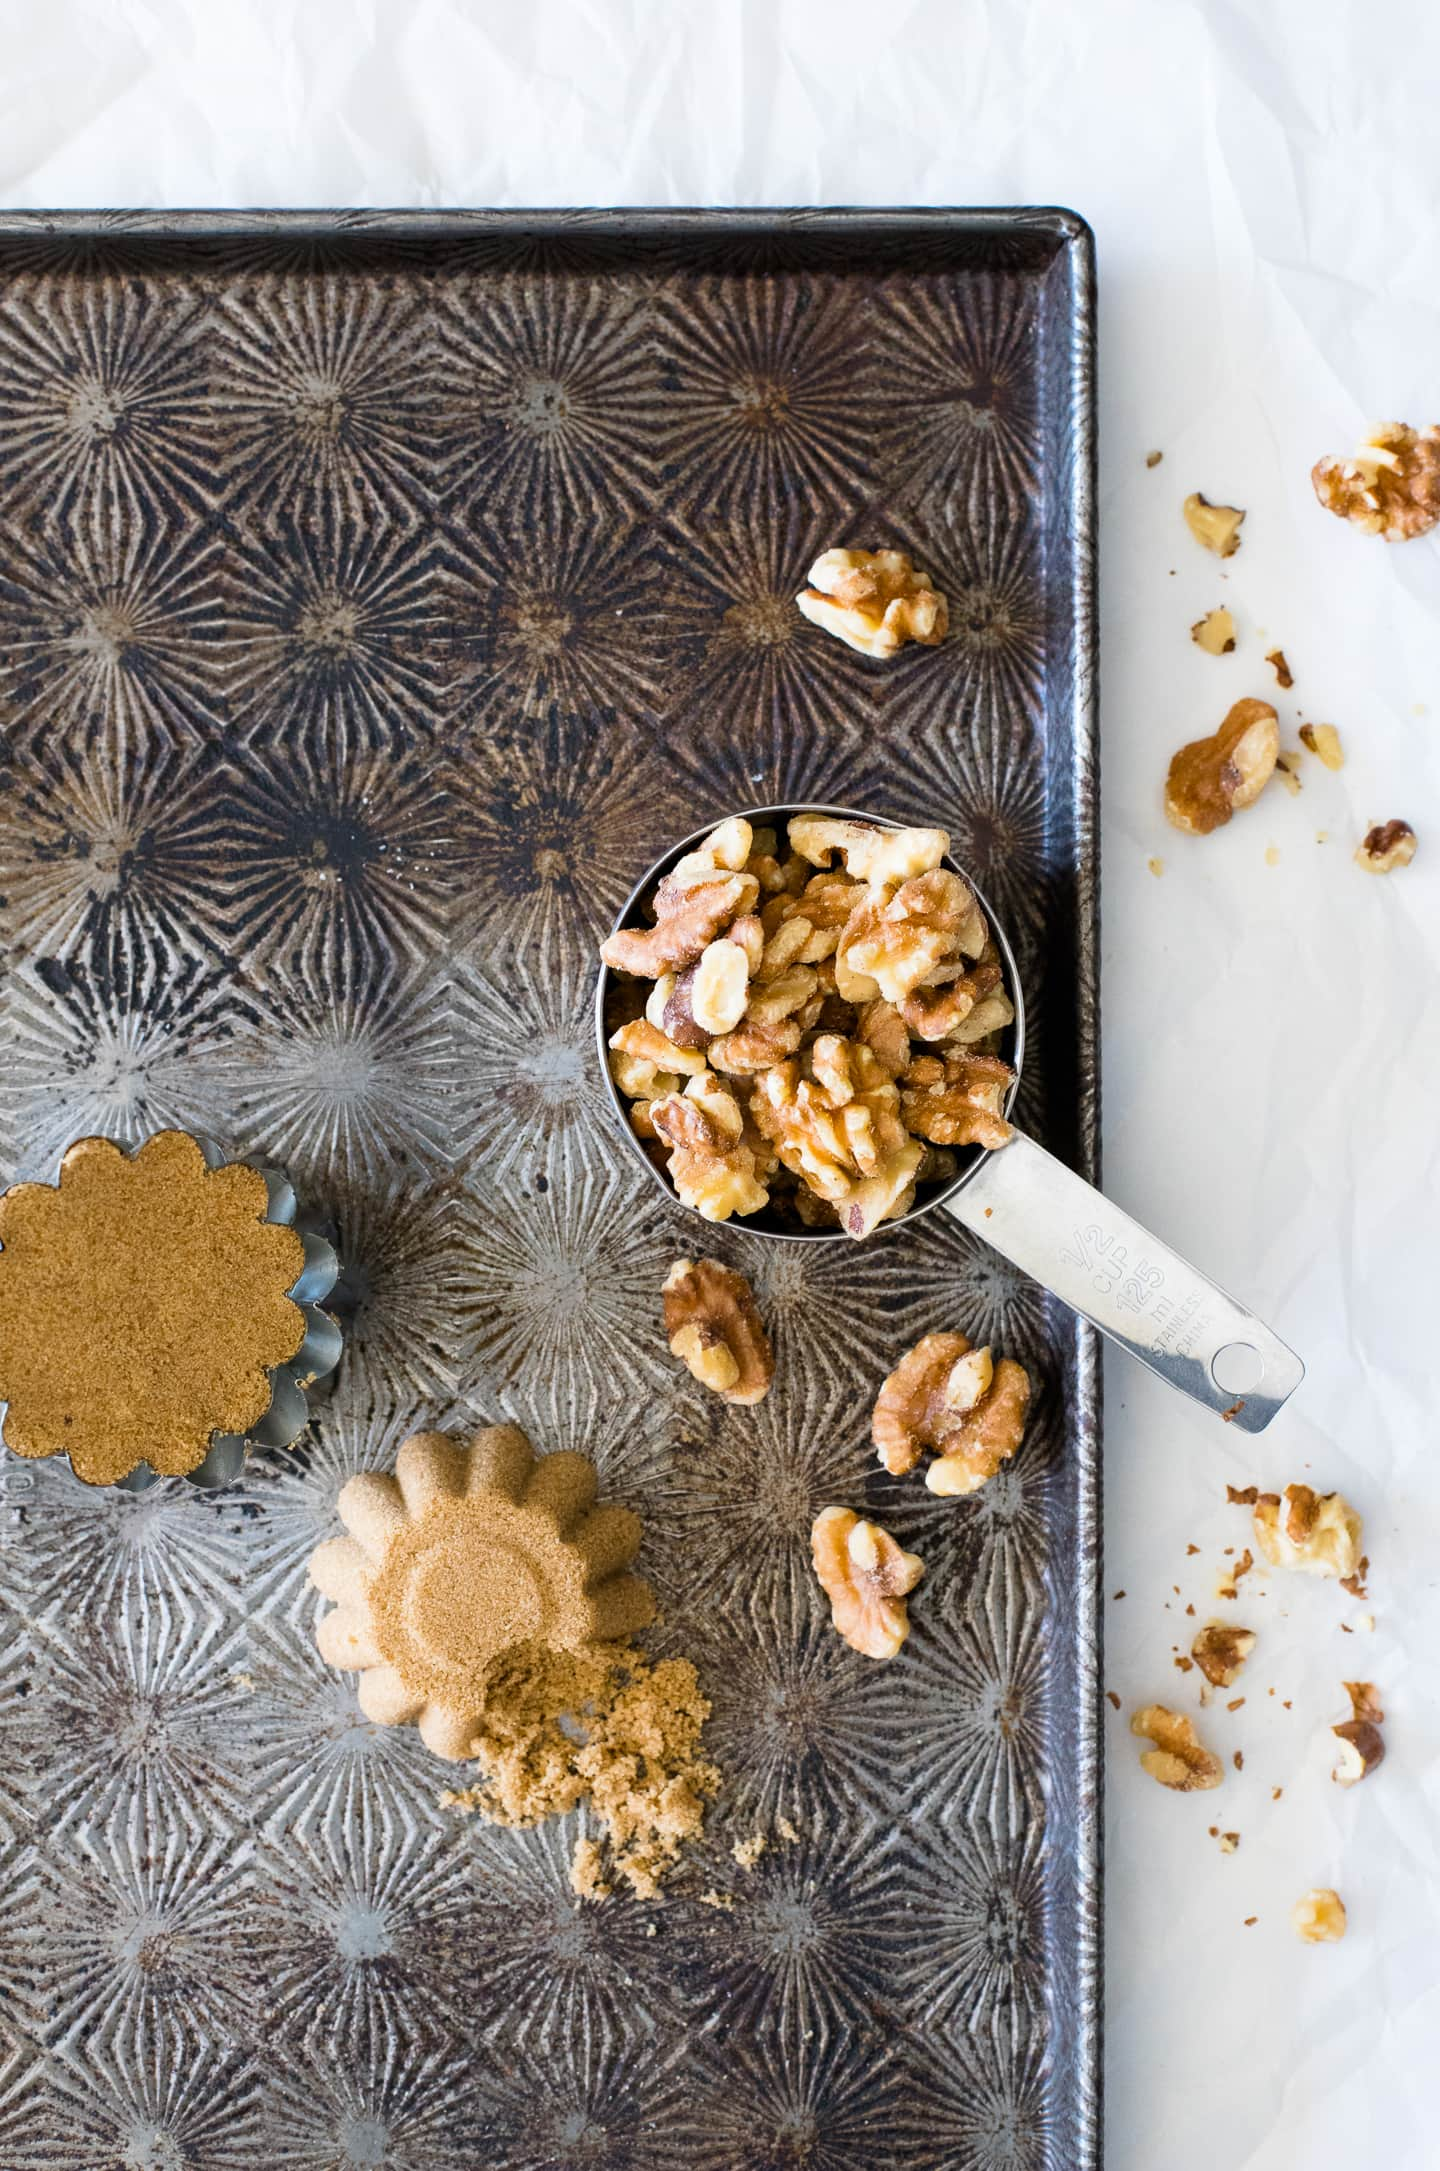 Overhead view of walnuts in a measuring cup, sitting on a vintage tray along with other recipe ingredients: brown sugar and sea salt.